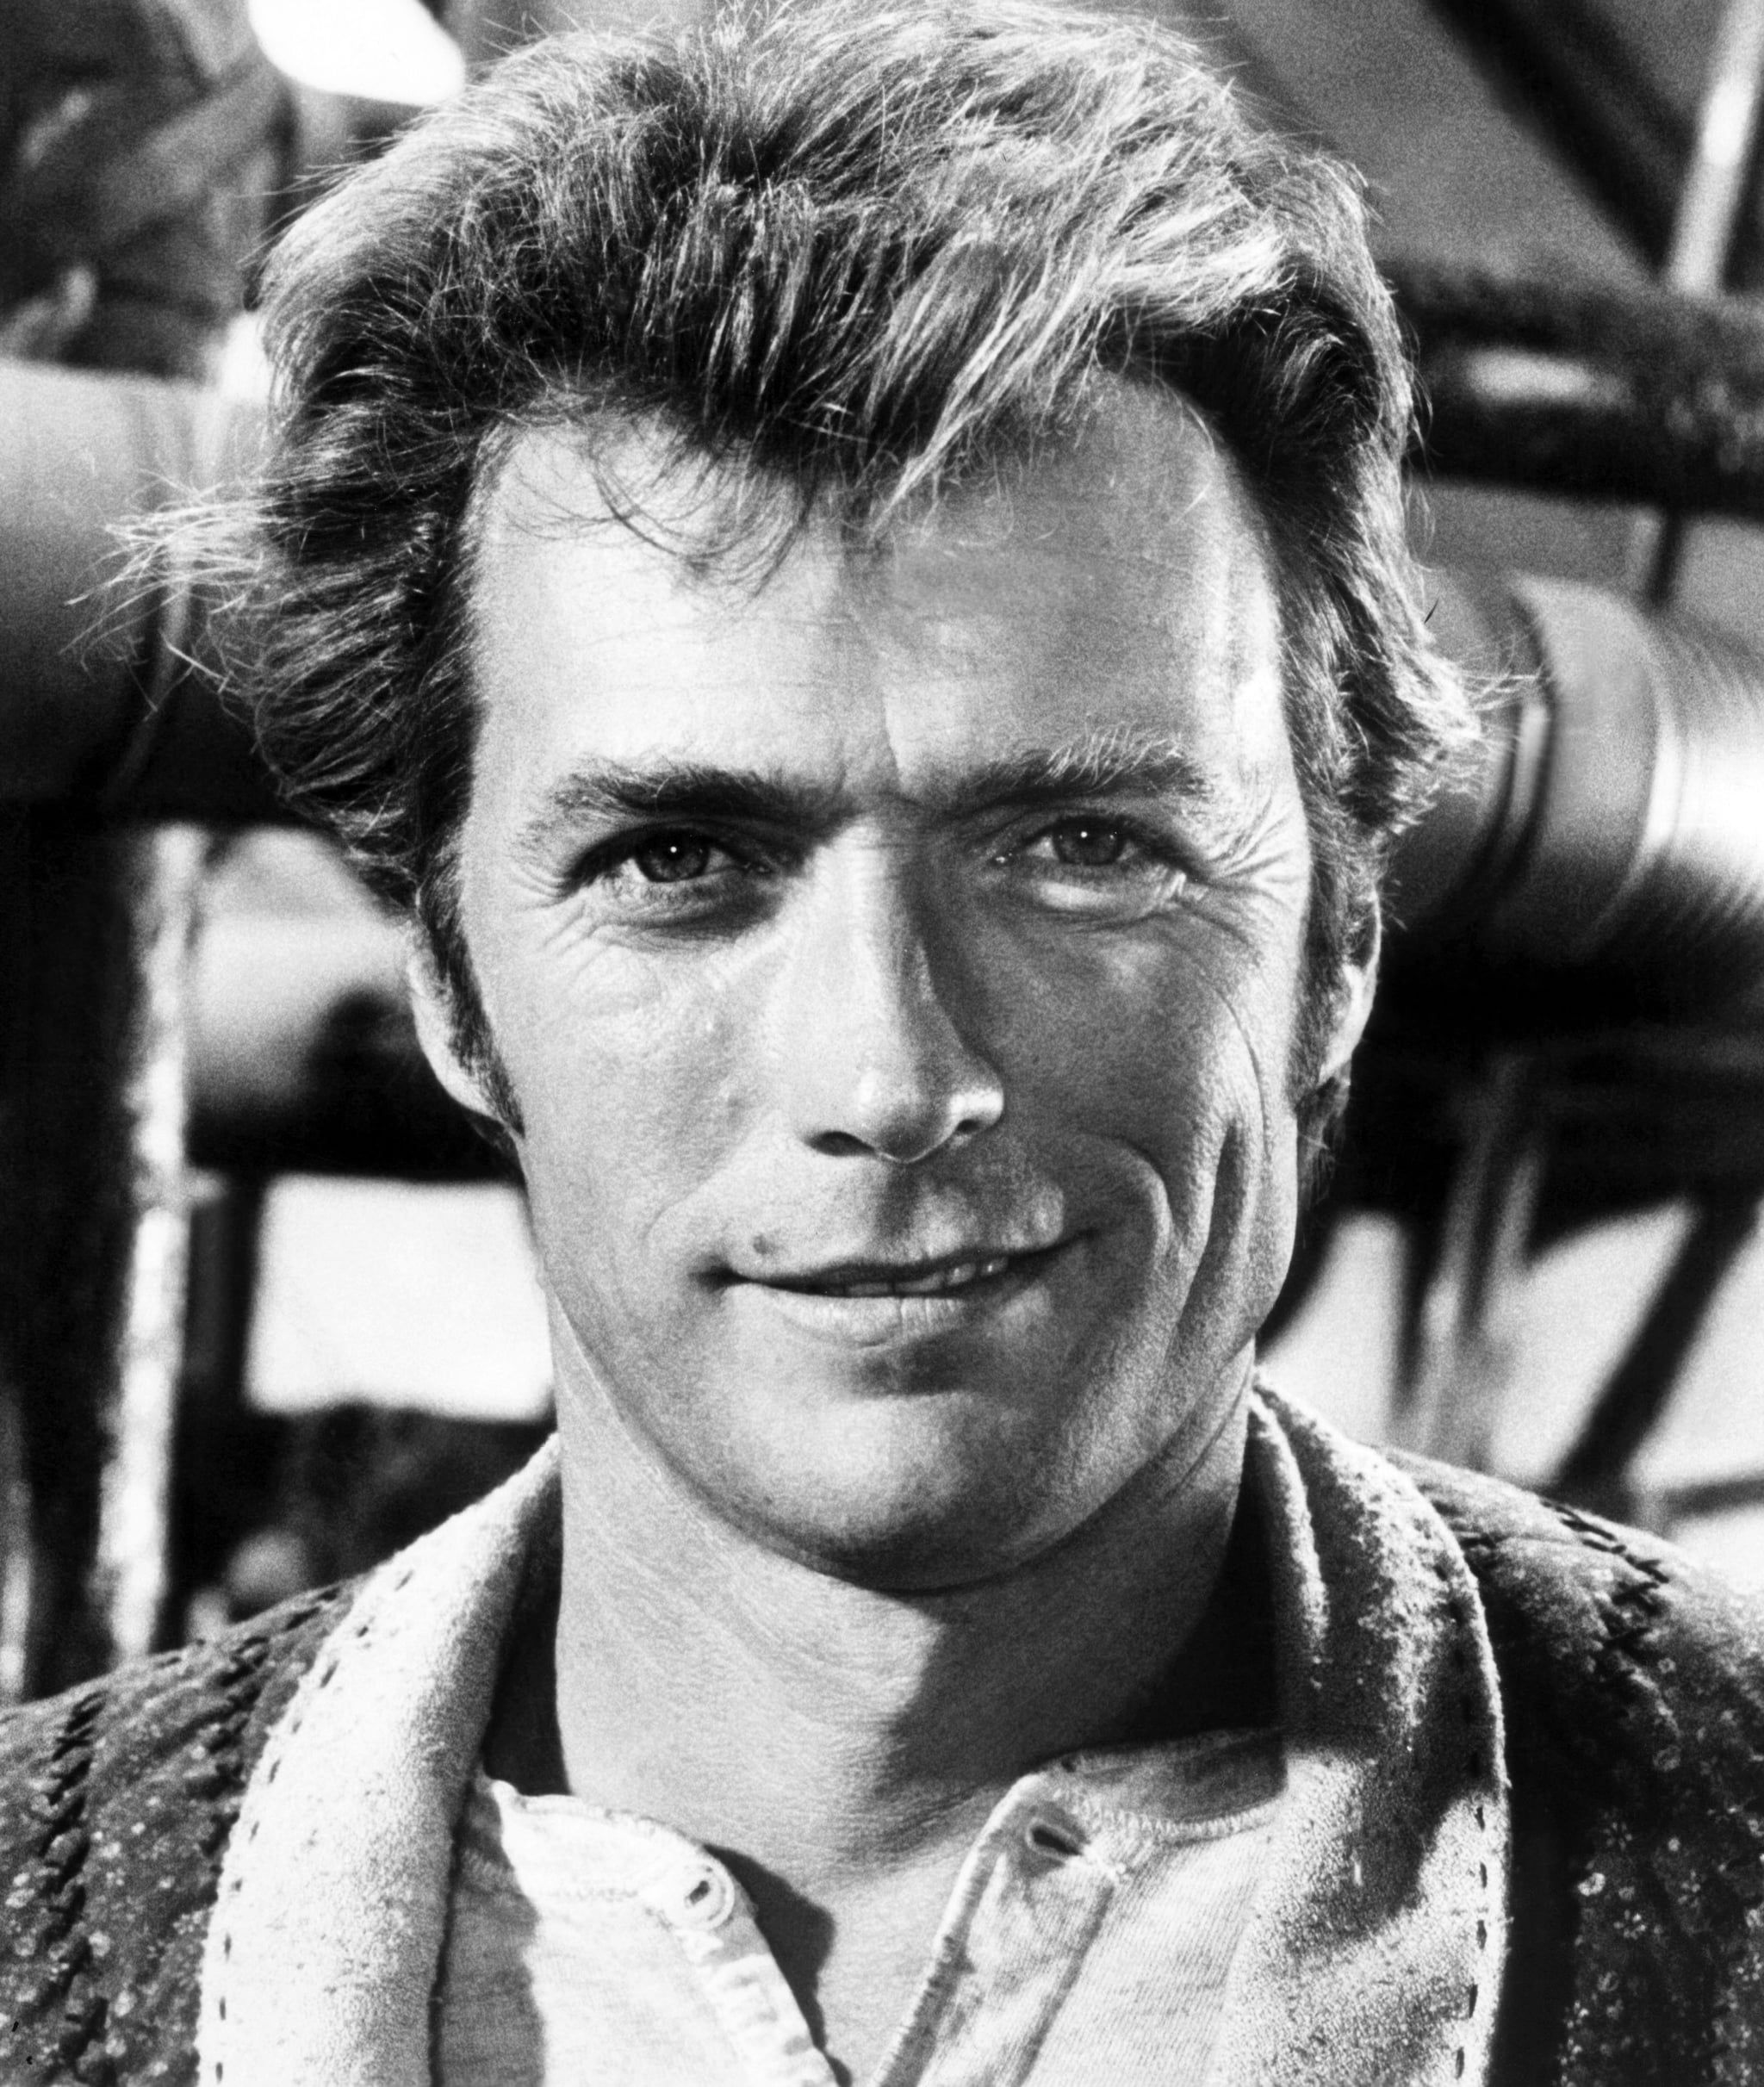 You Guys Clint Eastwood Was A Stone Cold Fox When He Was Younger